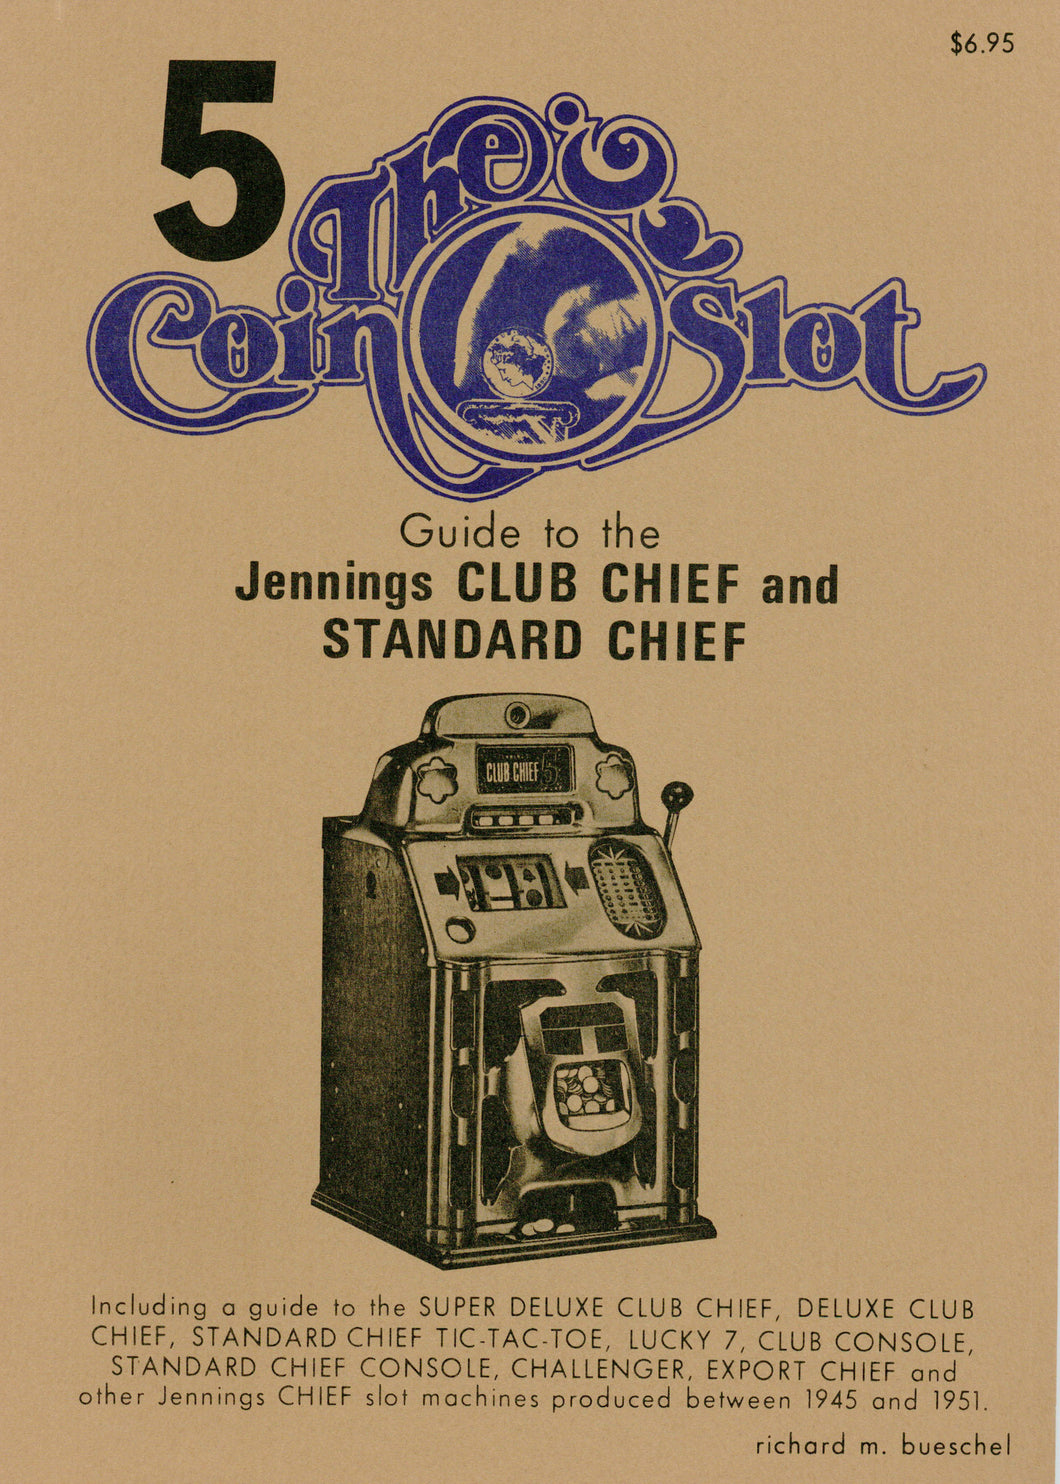 Coin Slot # 5. Guide to the Jennings Club Chief and Standard Chief